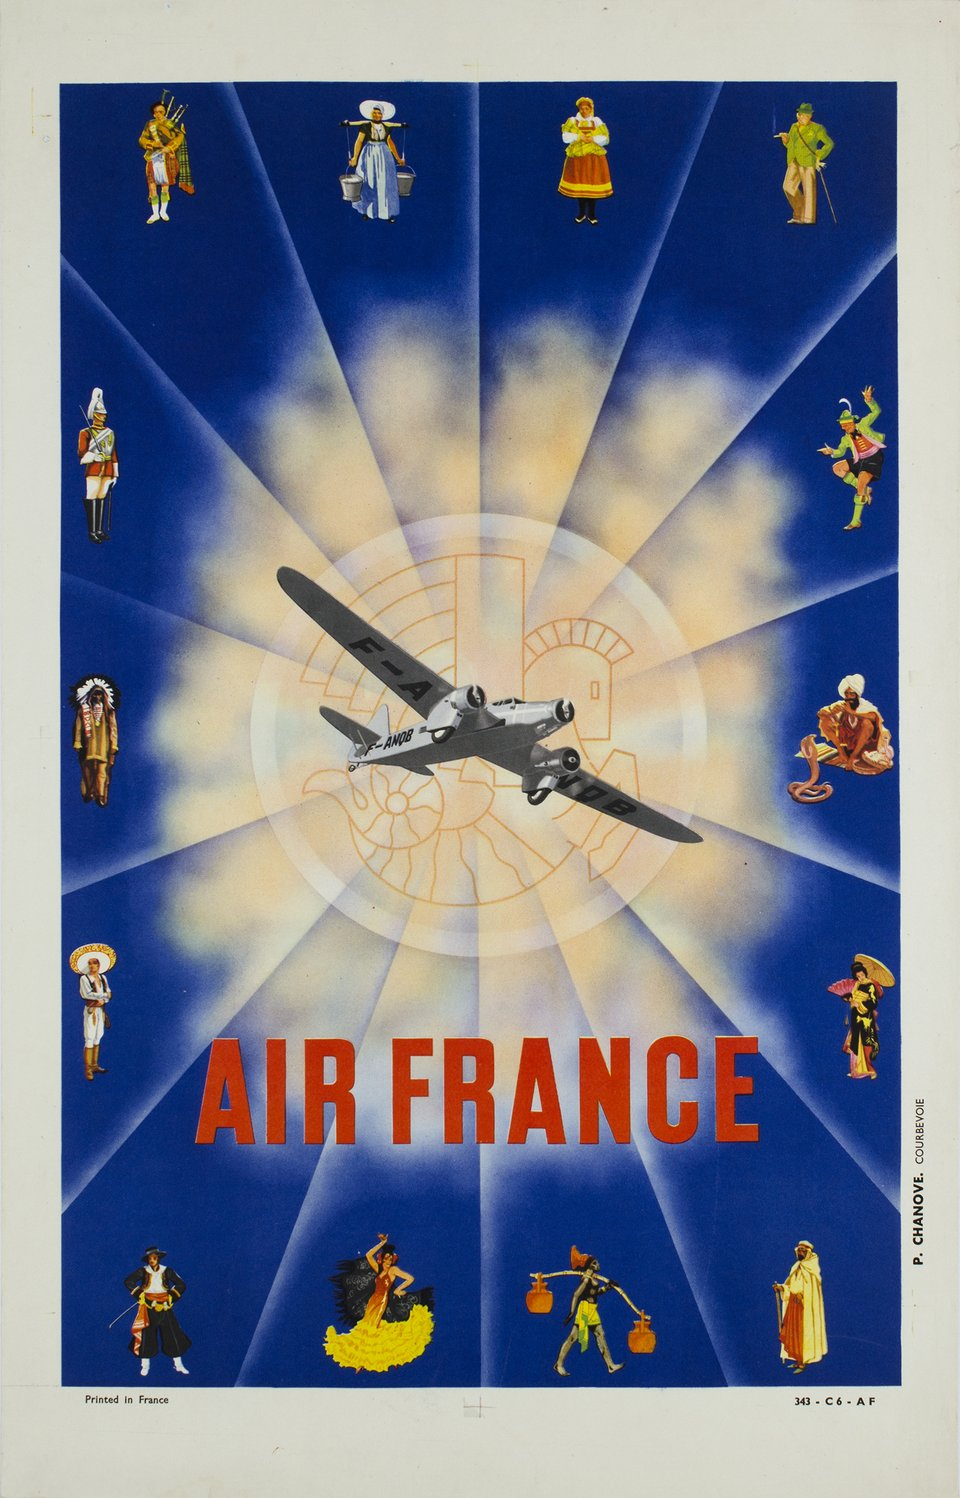 Air France – Affiche ancienne – N. GERAL – 1937